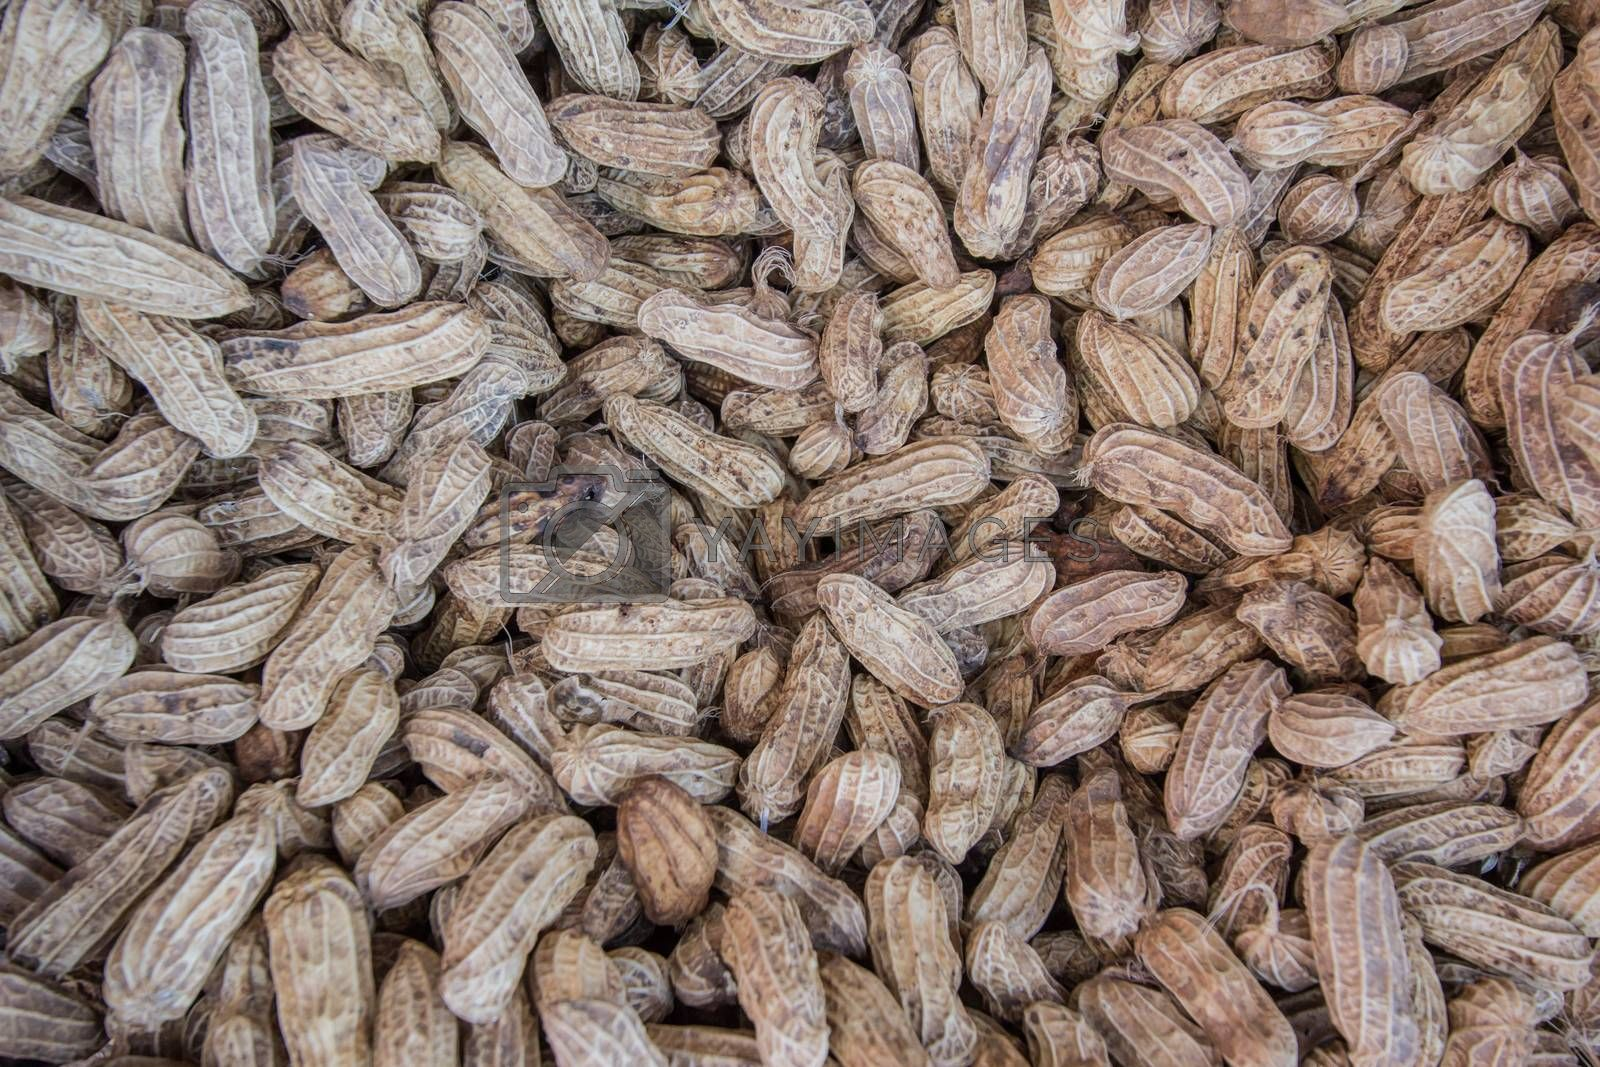 Royalty free image of Many peanuts in shells, one upon the other  by kritsada1992